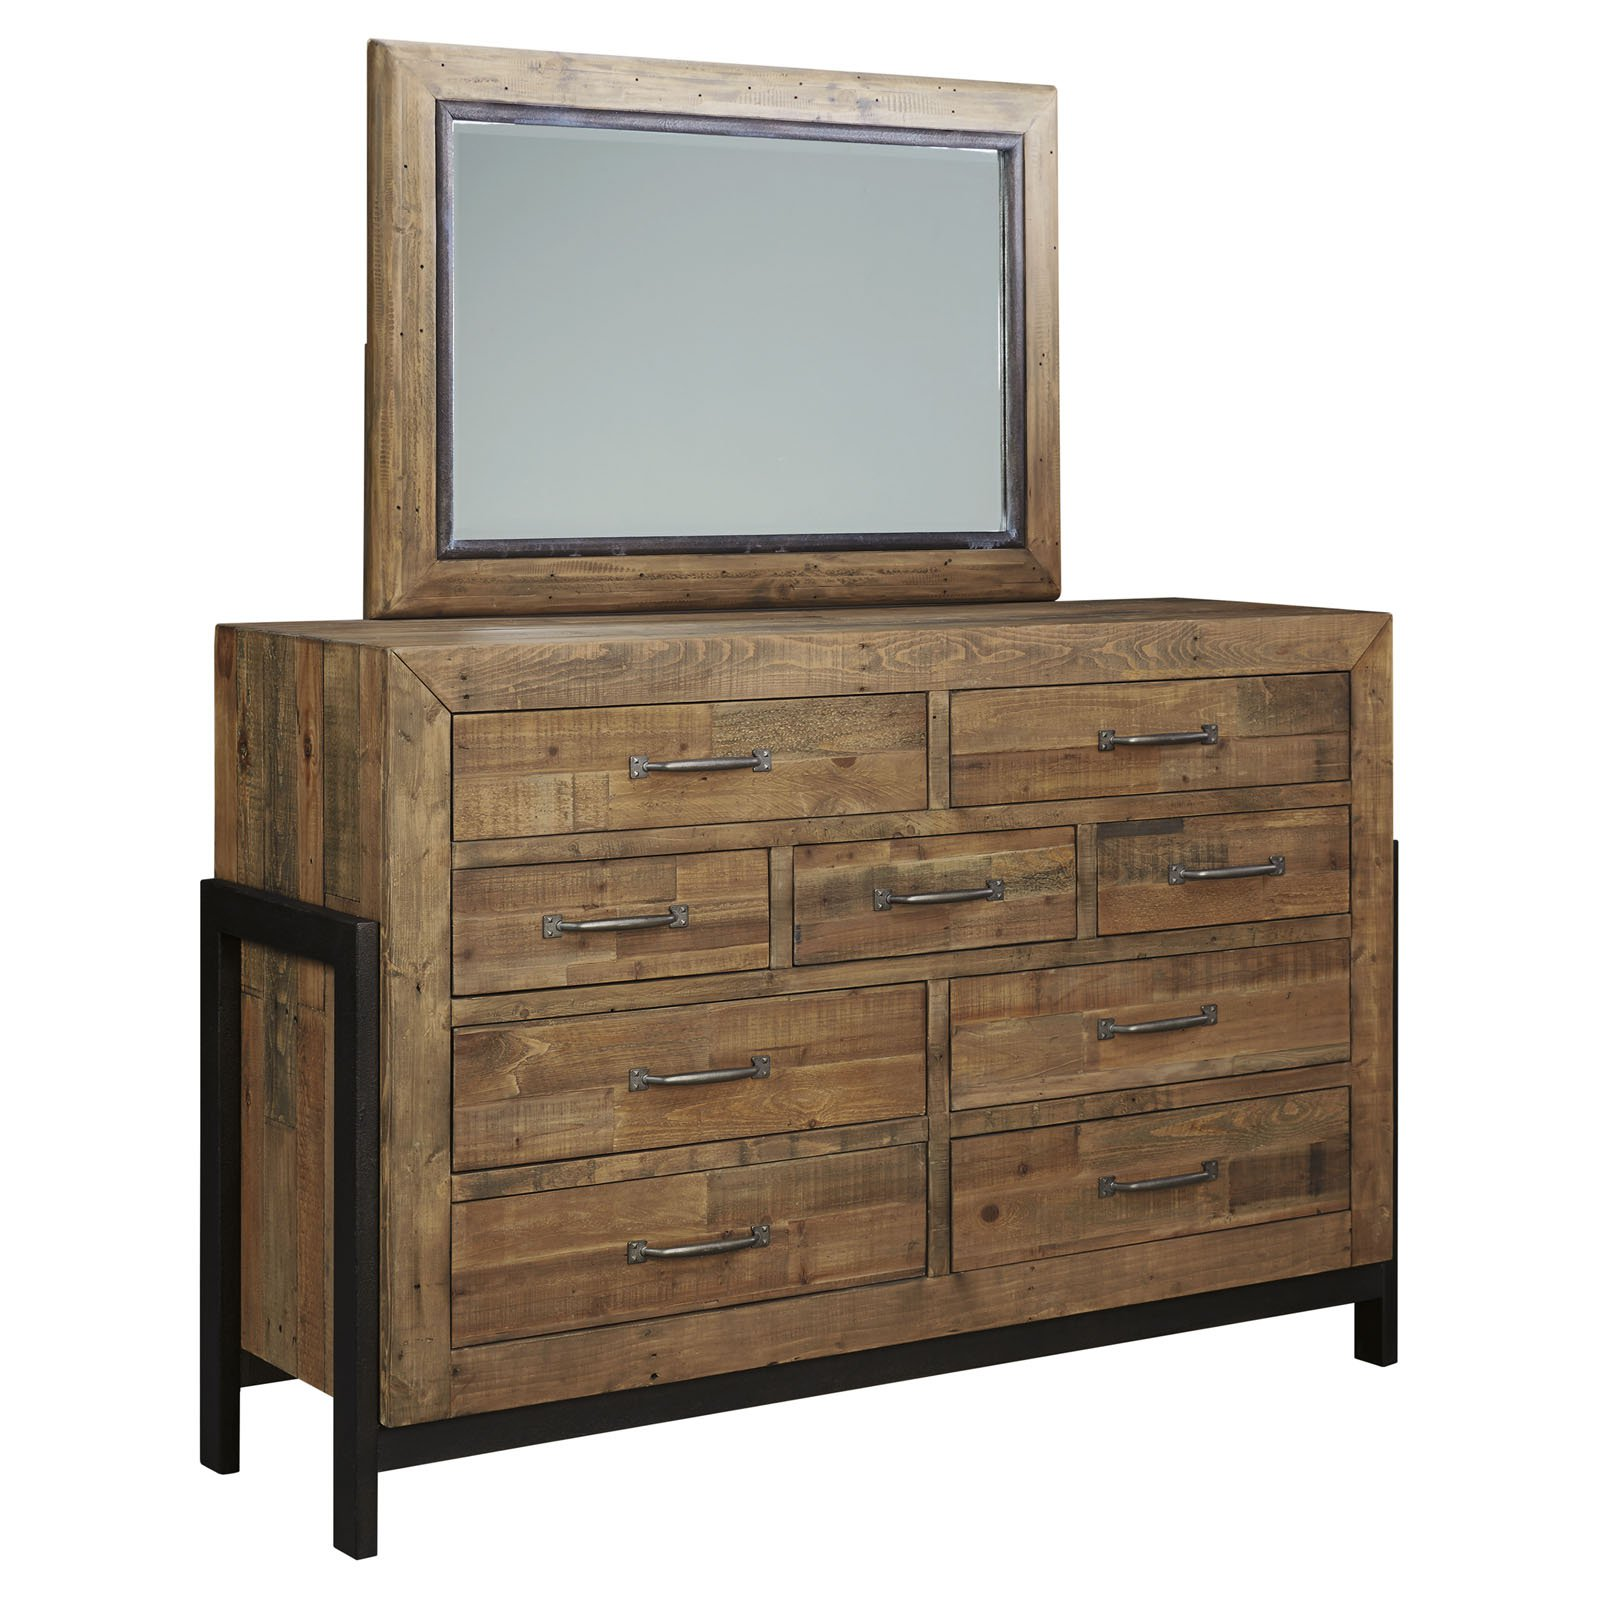 Signature Design by Ashley Sommerford 9 Drawer Dresser with Optional Mirror